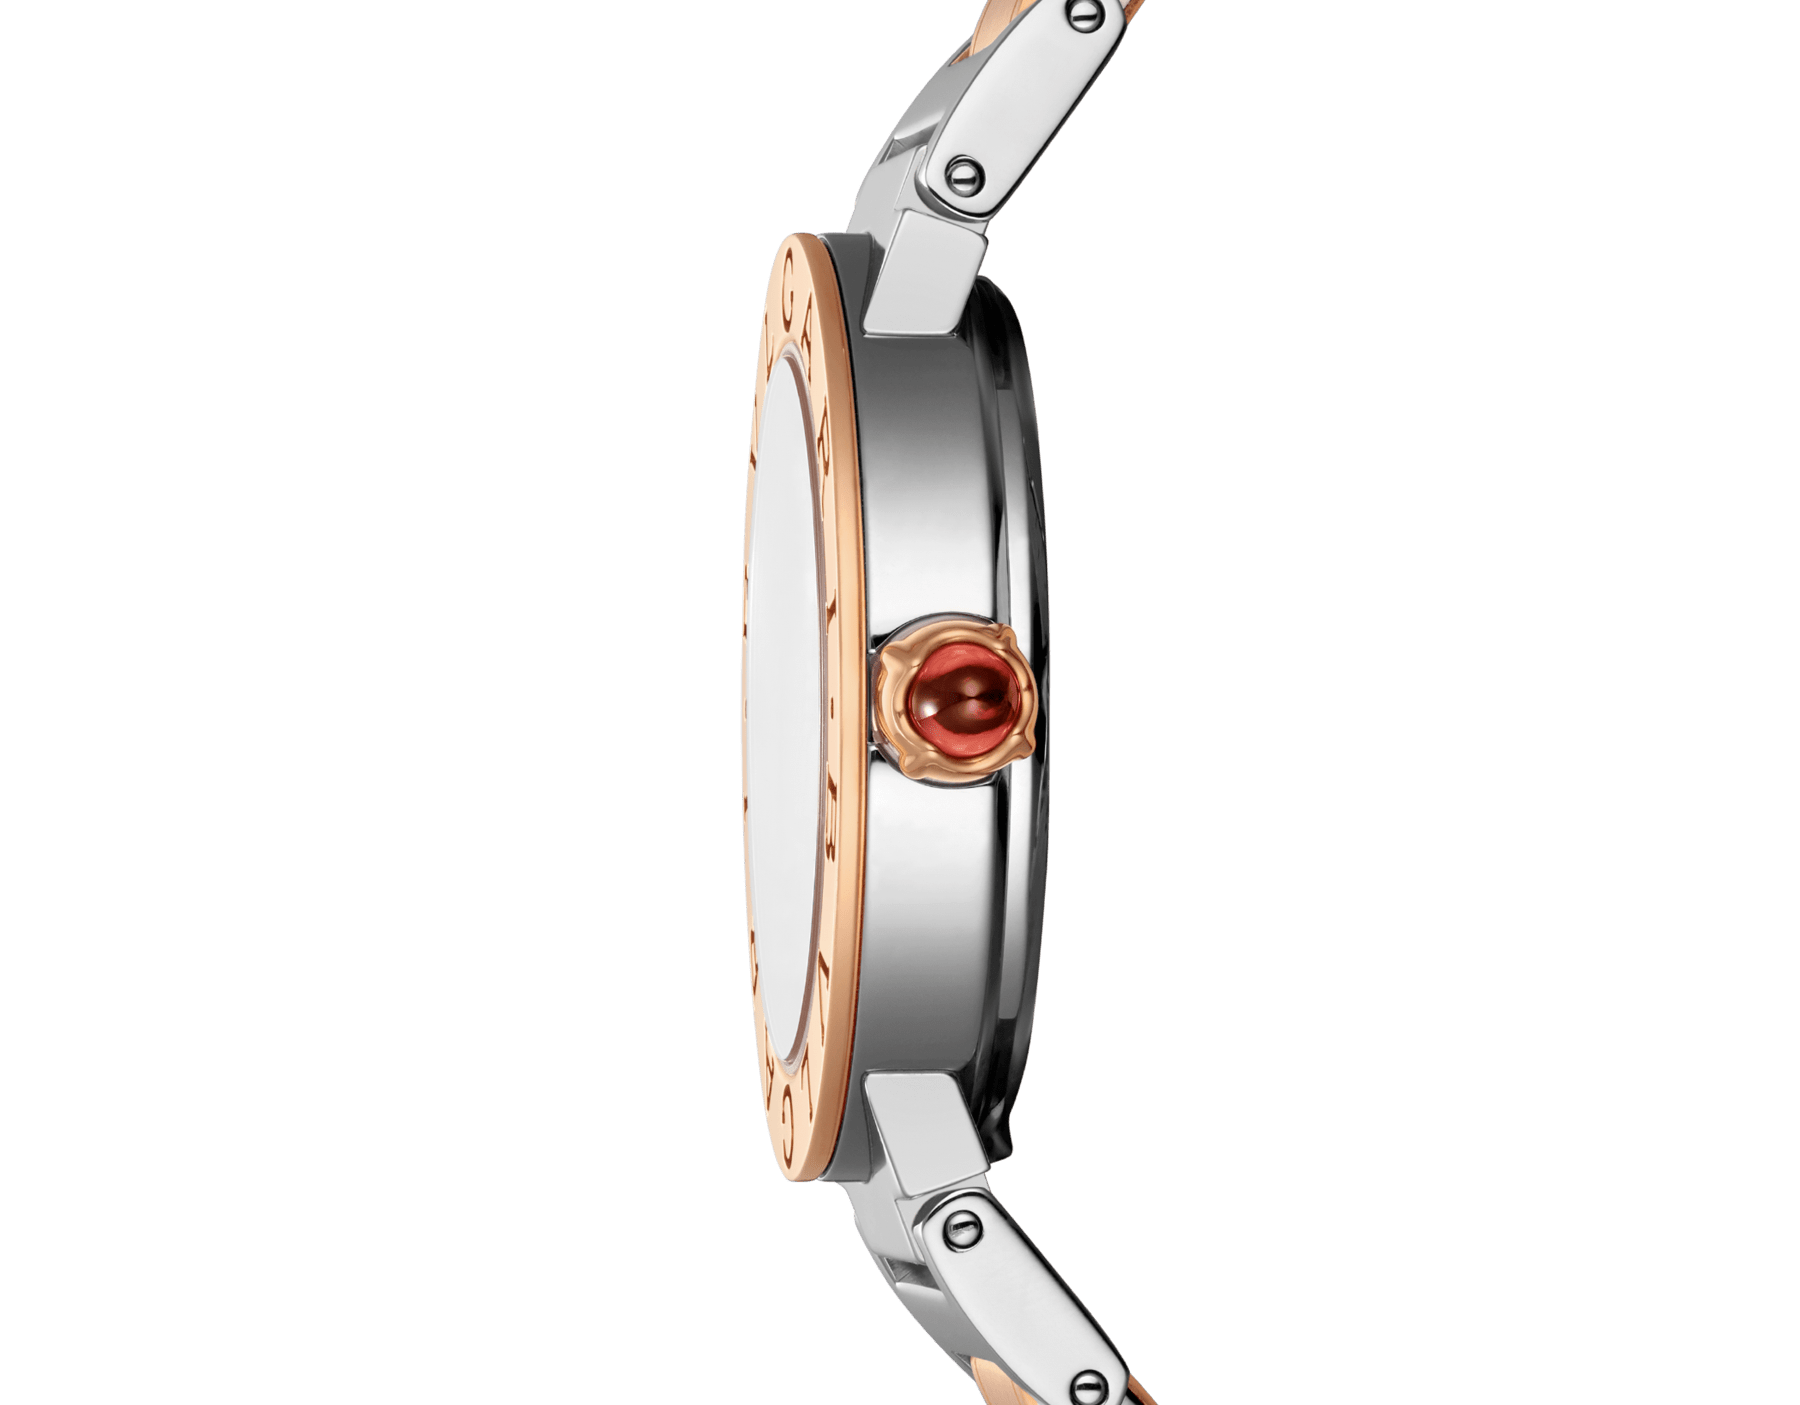 BVLGARI BVLGARI watch in stainless steel and 18 kt rose gold case and bracelet, with brown soleil lacquered dial and diamond indexes. Small model 102155 image 3